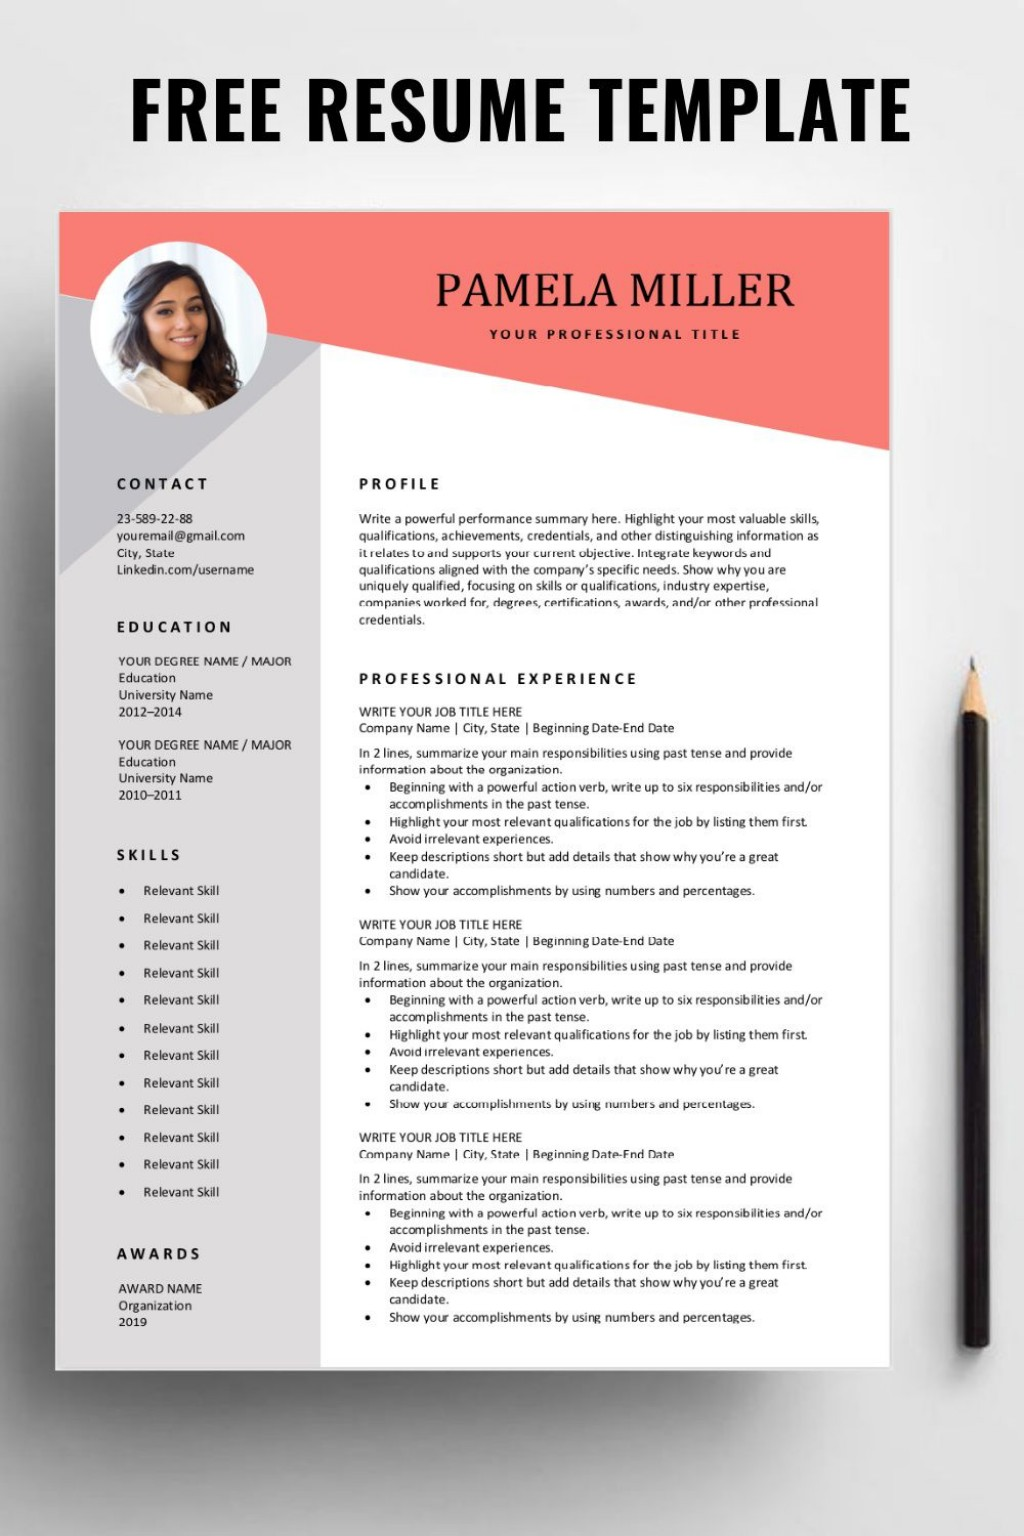 000 Formidable Free Resume Template Download High Def  Google Doc Attractive Microsoft Word 2020Large